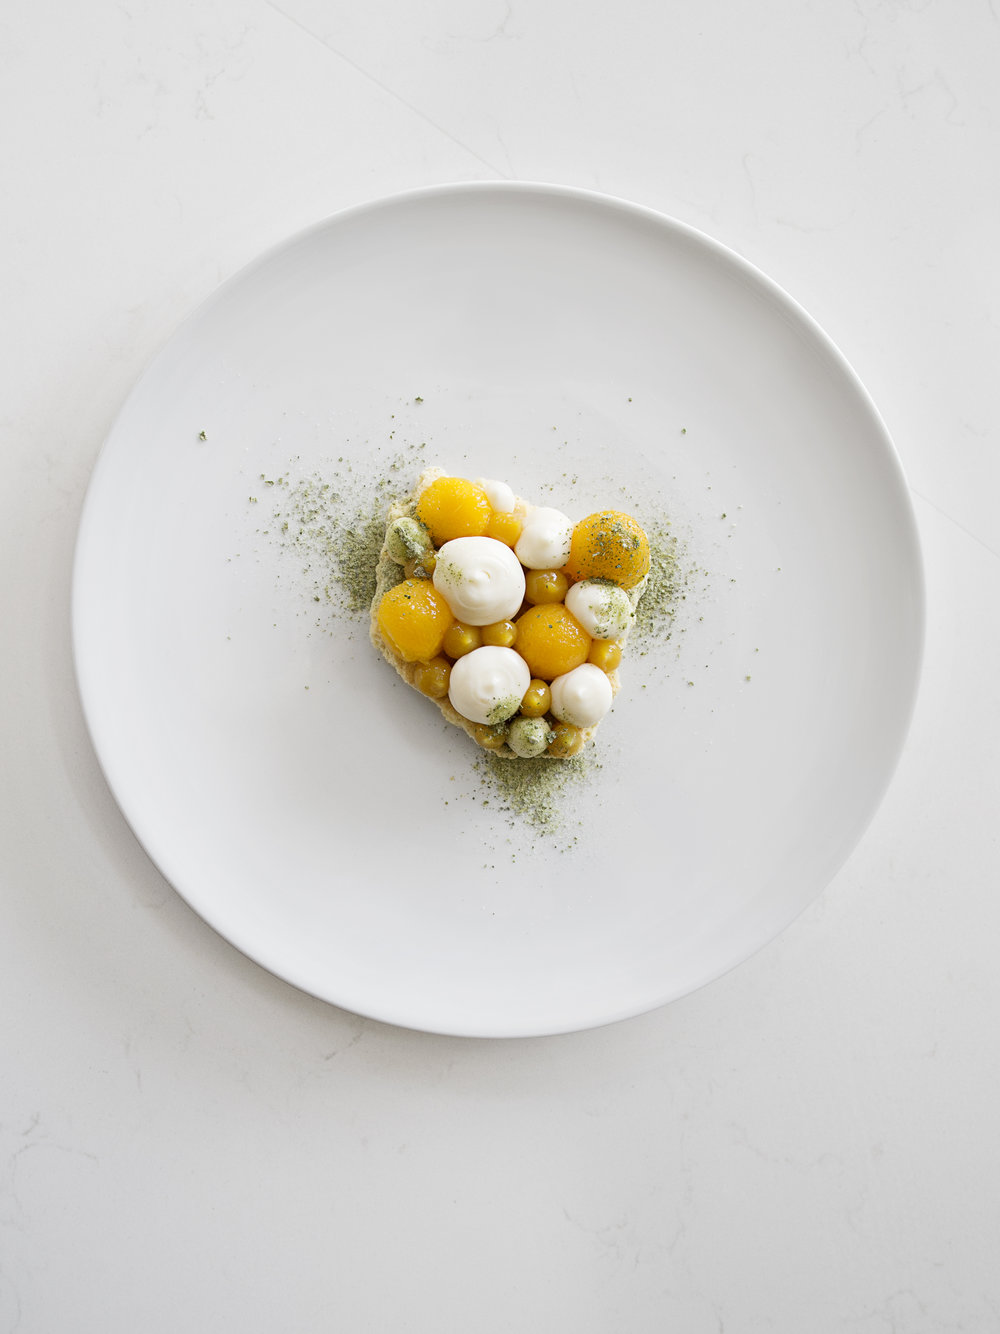 Buttermilk, mango, sablé and bay leaf.